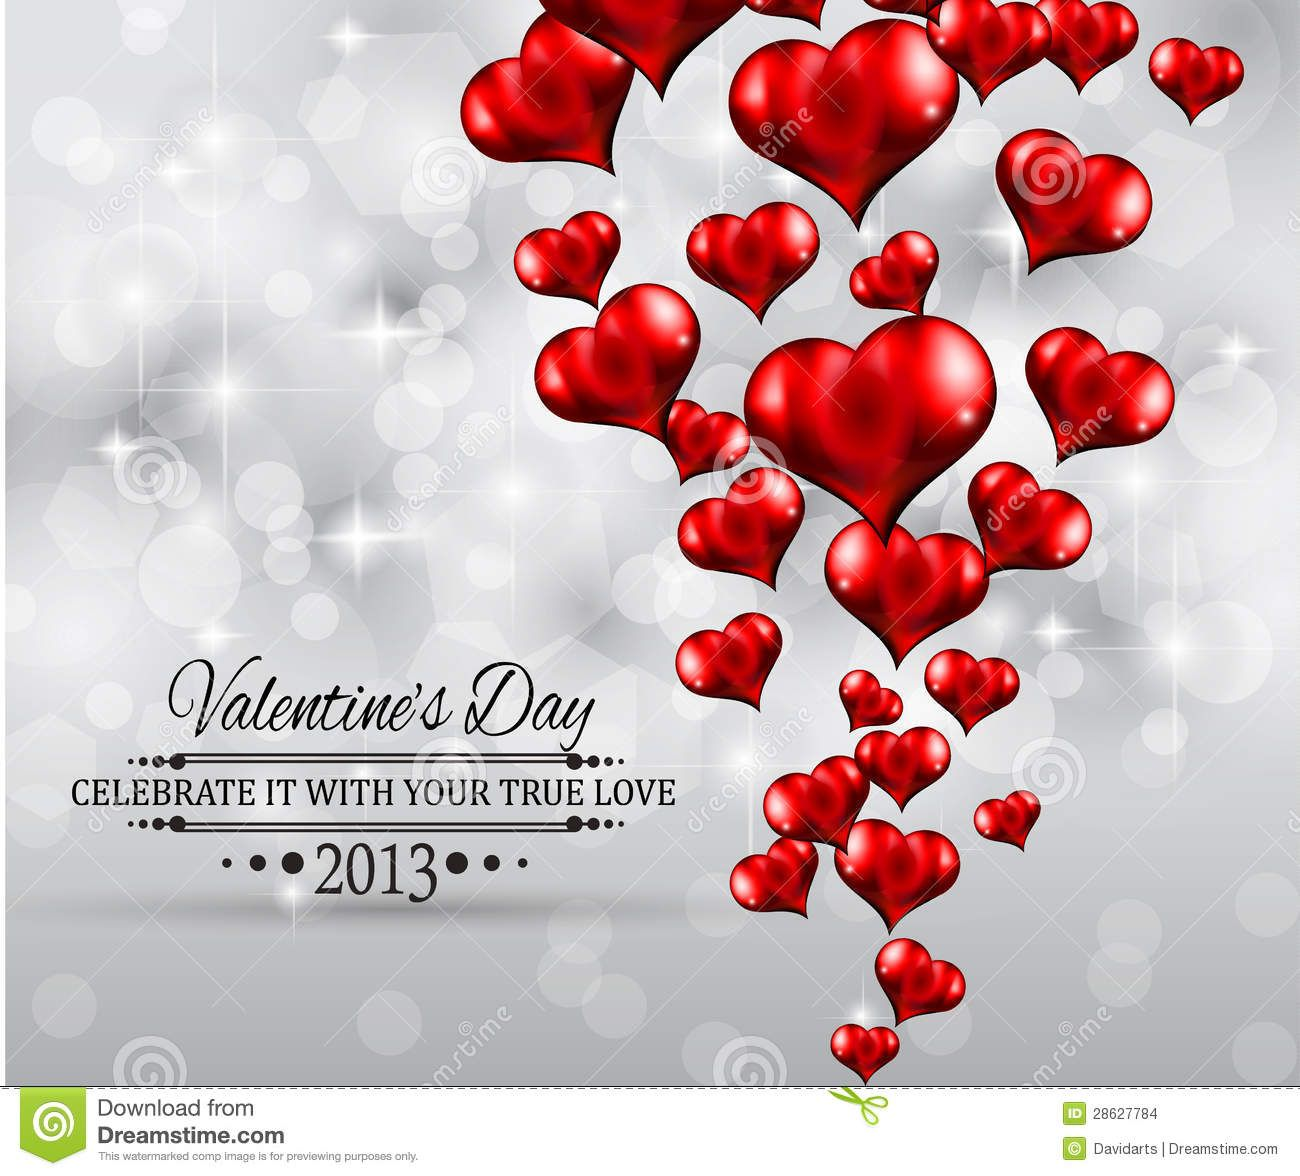 Valentines Day Party Invitation Flyer Background Stock Images ...